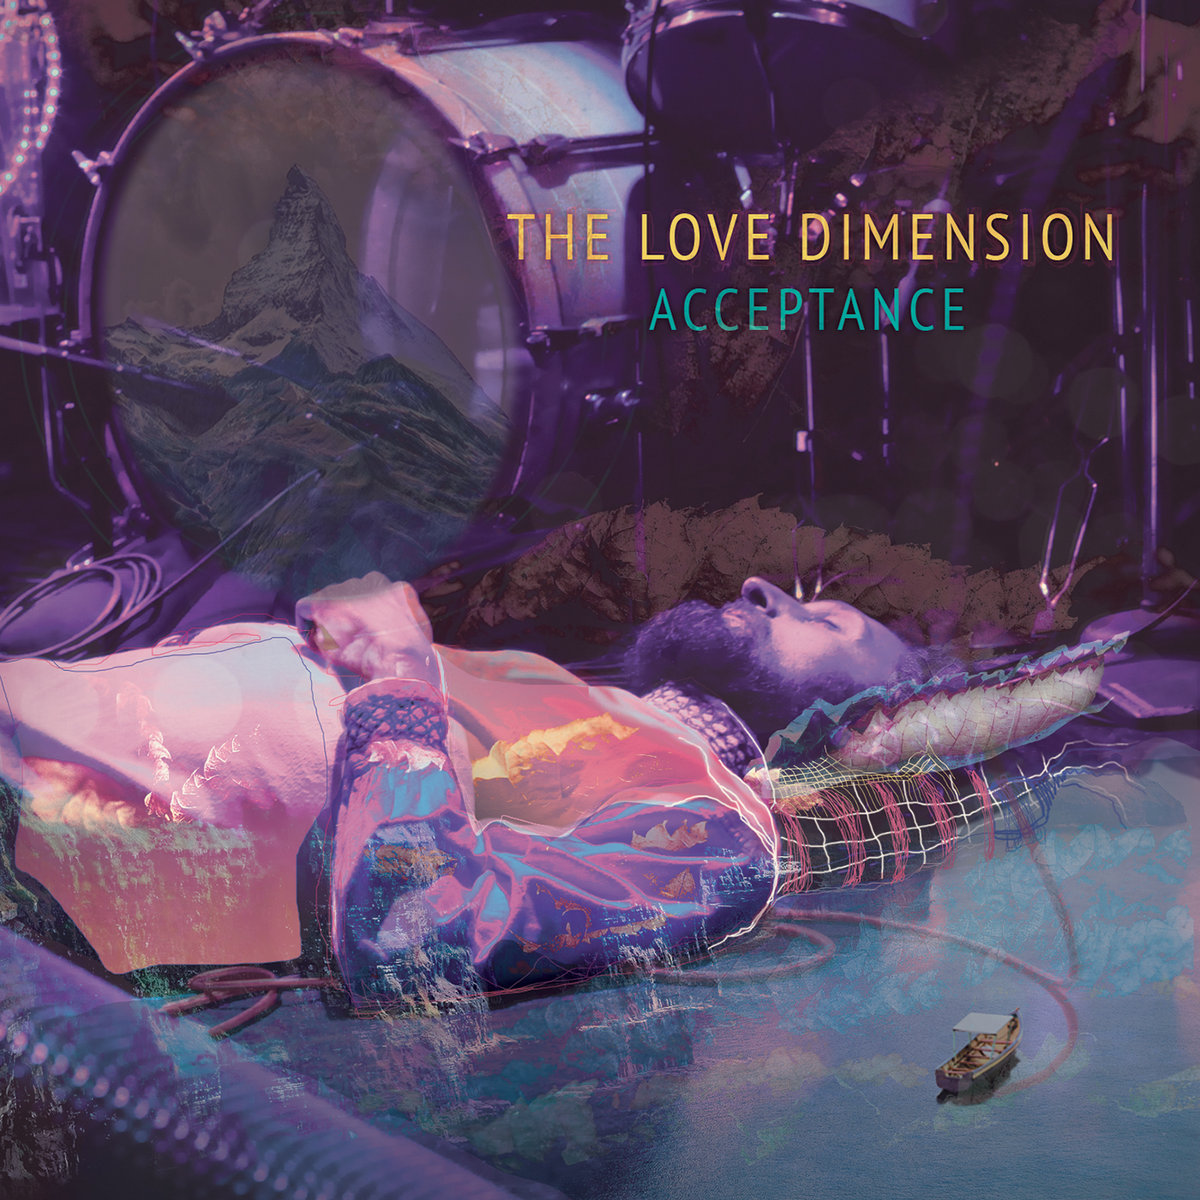 The Love Dimension 'acceptance'